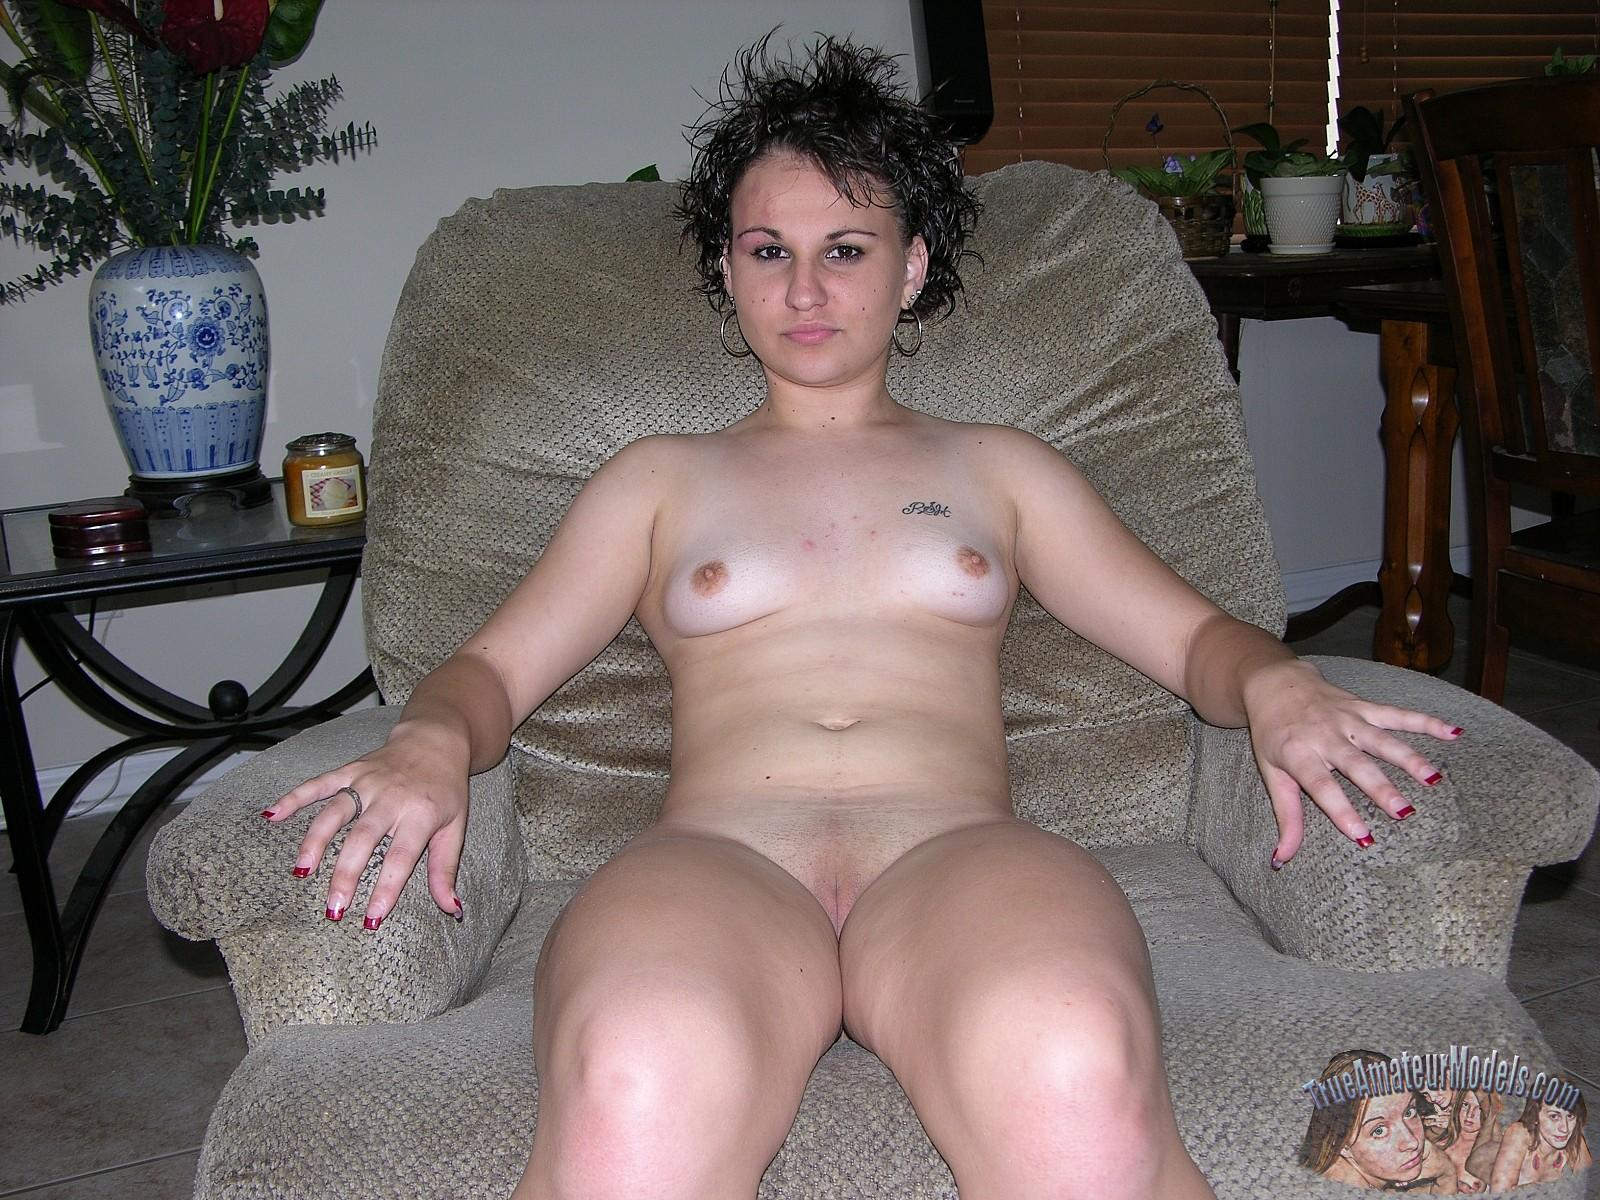 Teen chick fucked on couch